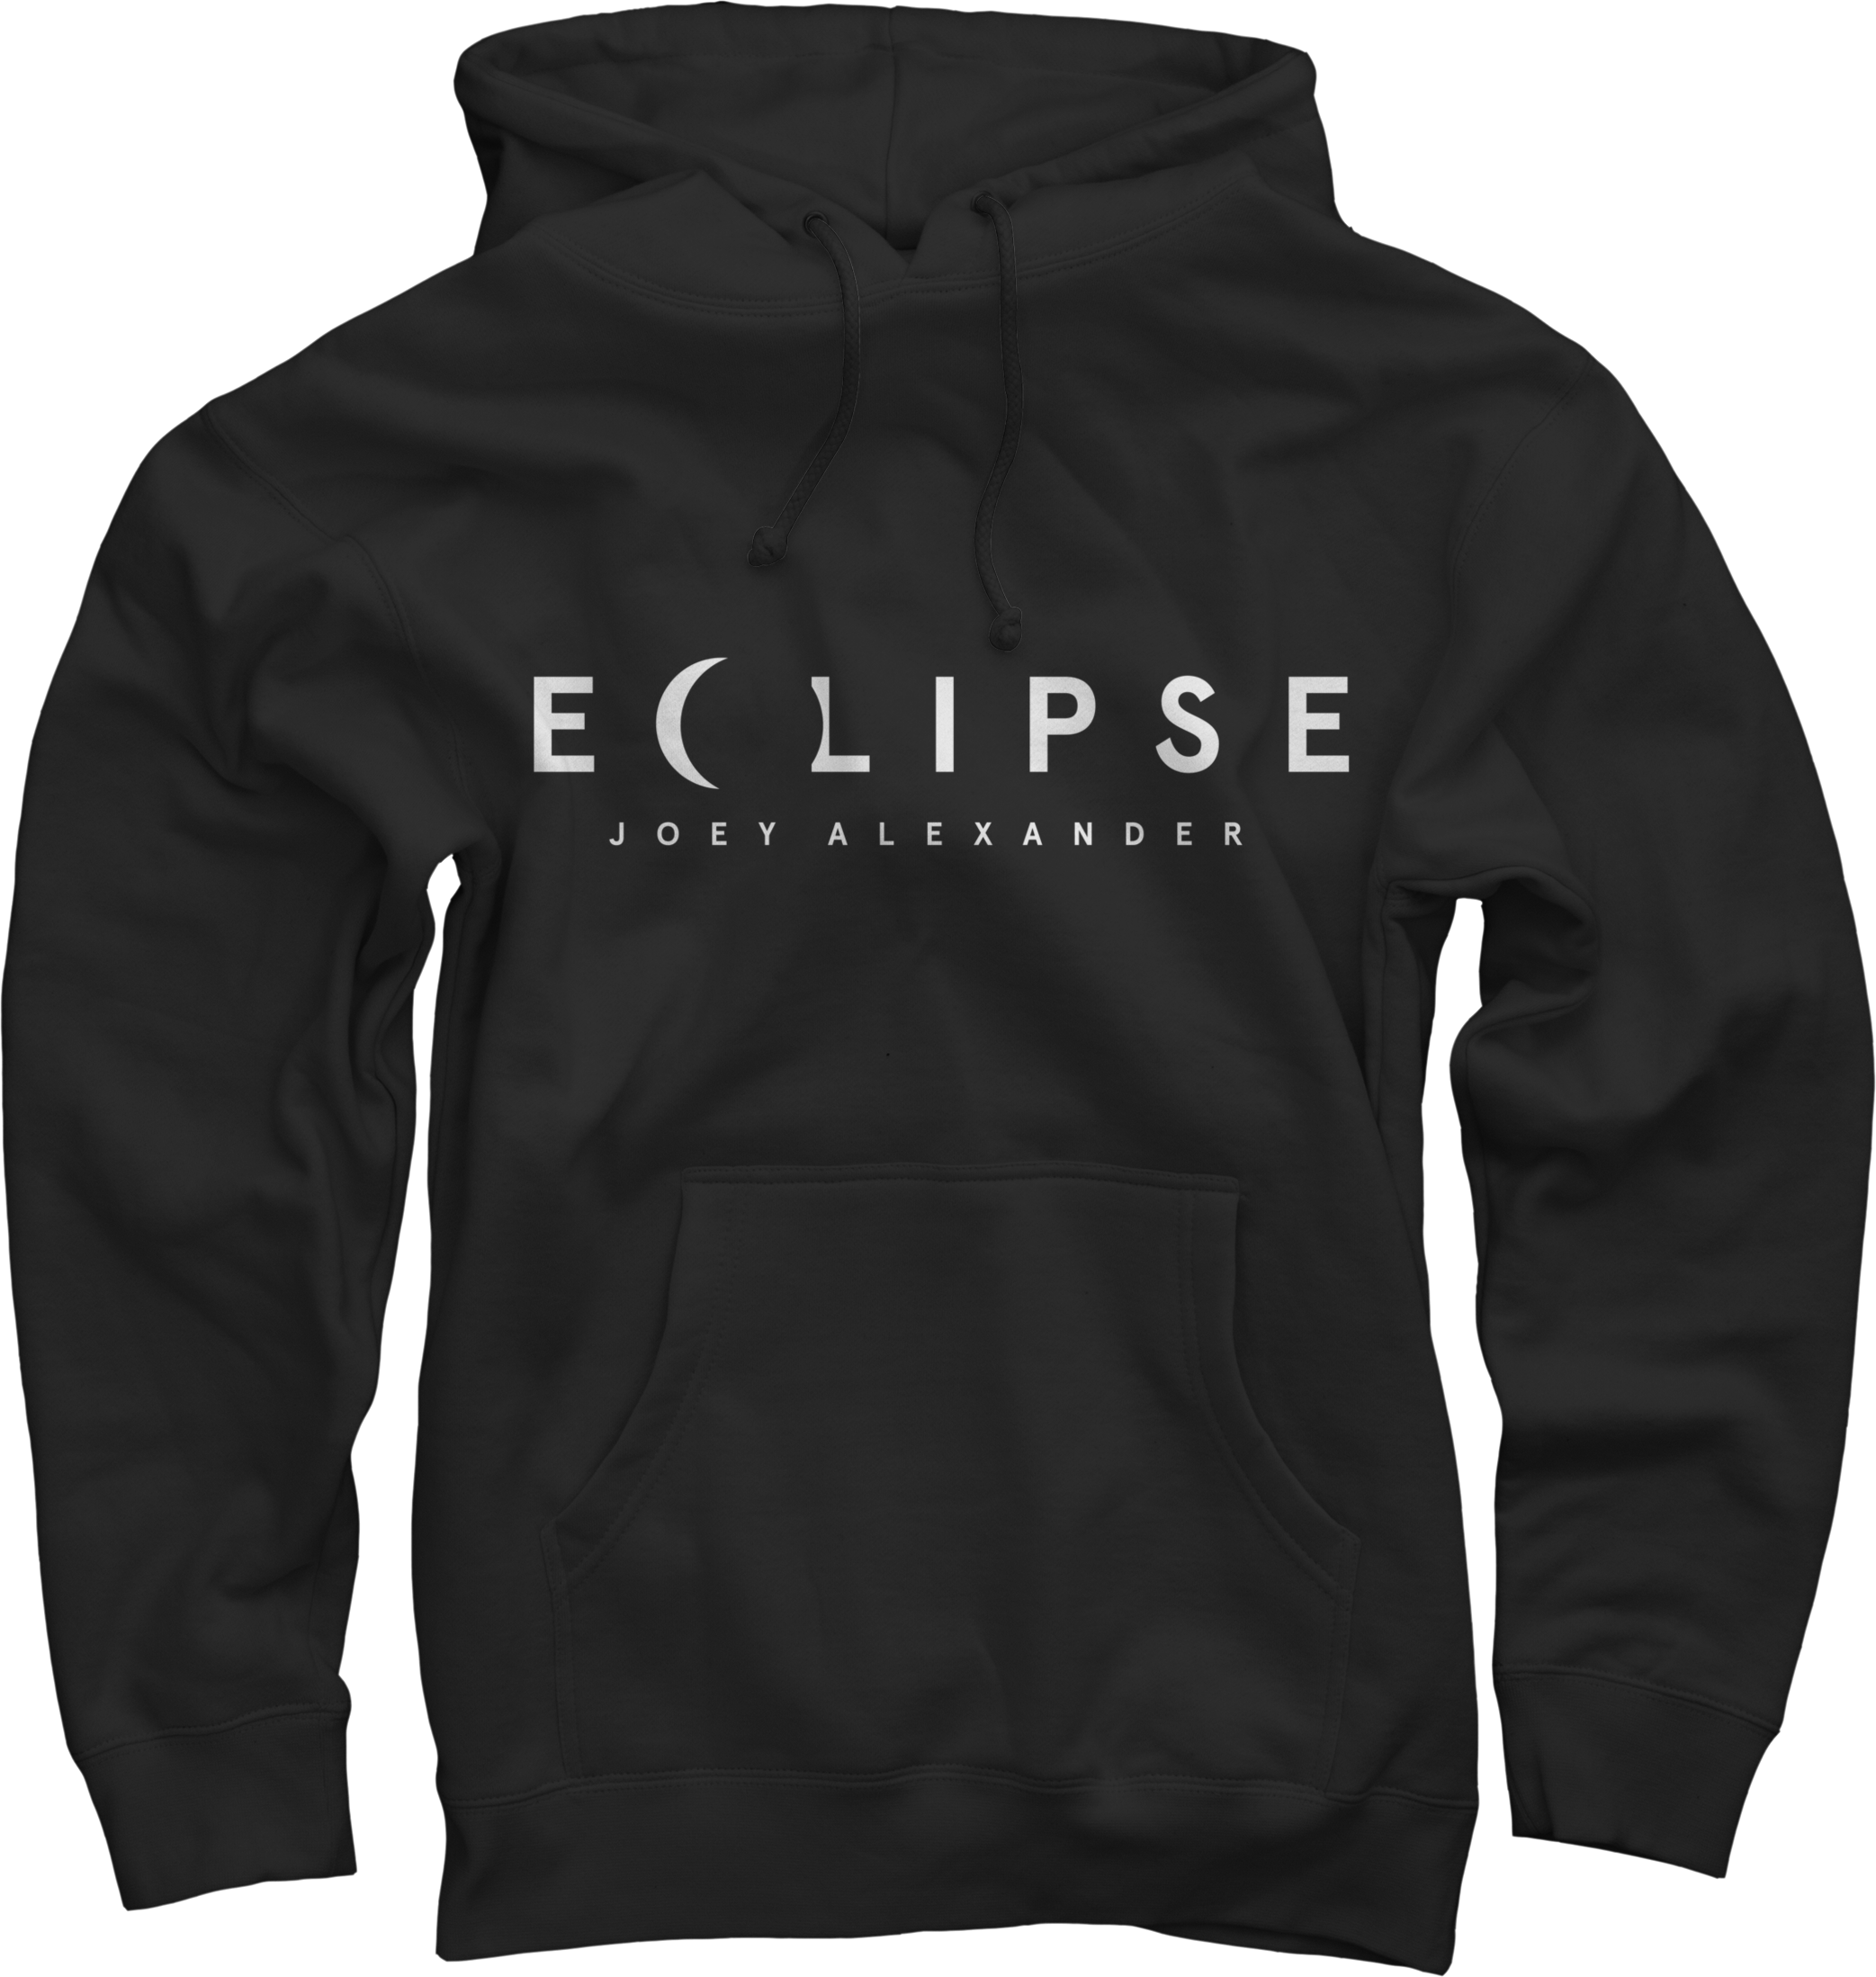 JOEY ALEXANDER - ECLIPSE (men's) BLACK HOODED PULLOVER